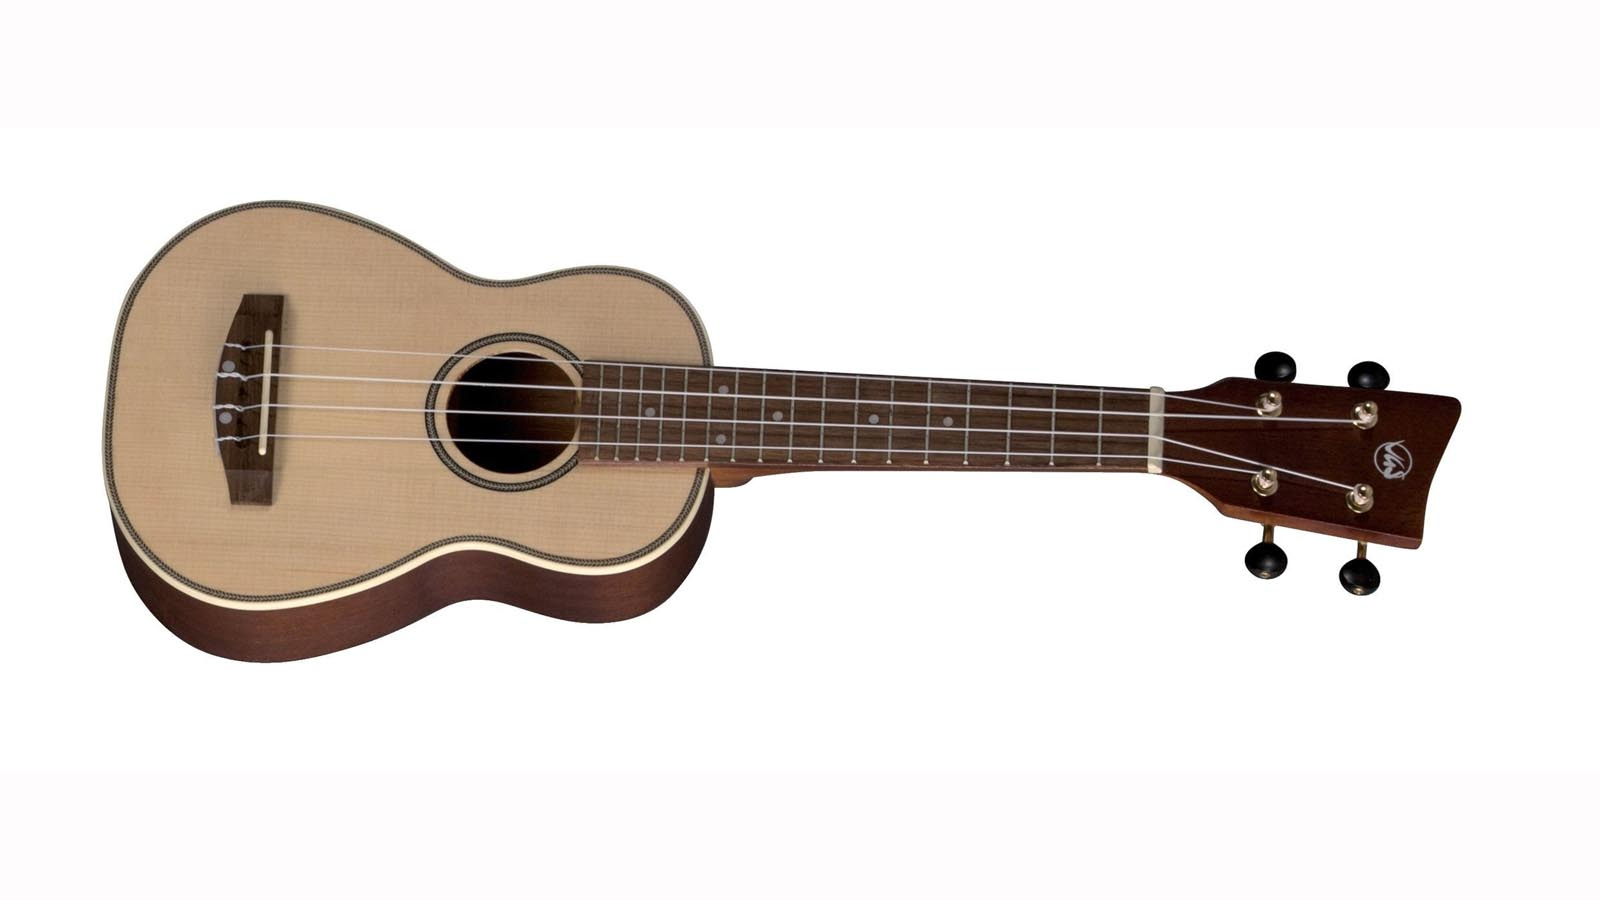 VGS Manoa M-SO Sopran Ukulele